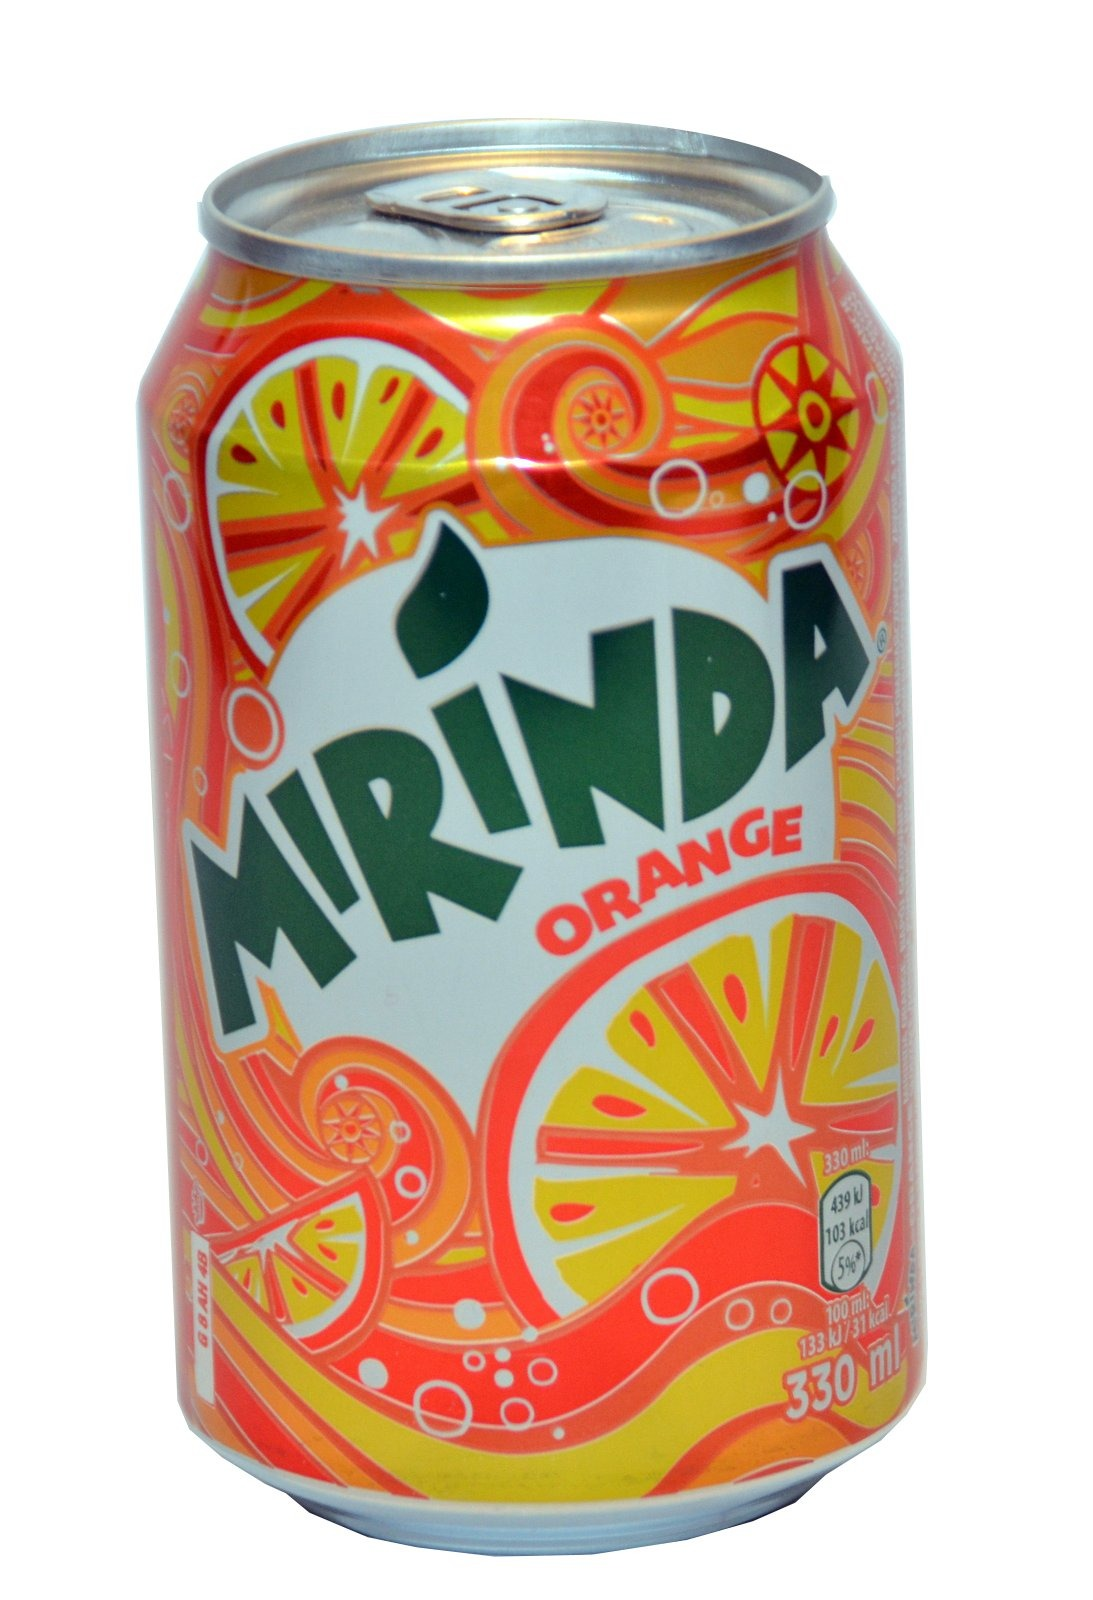 MIX Pepsi 330 ml / Mirinda 330 ml / 7 UP 330 ml CAN | BEVERAGES \ Pepsi OFFER \ BEVERAGES \ Pepsi